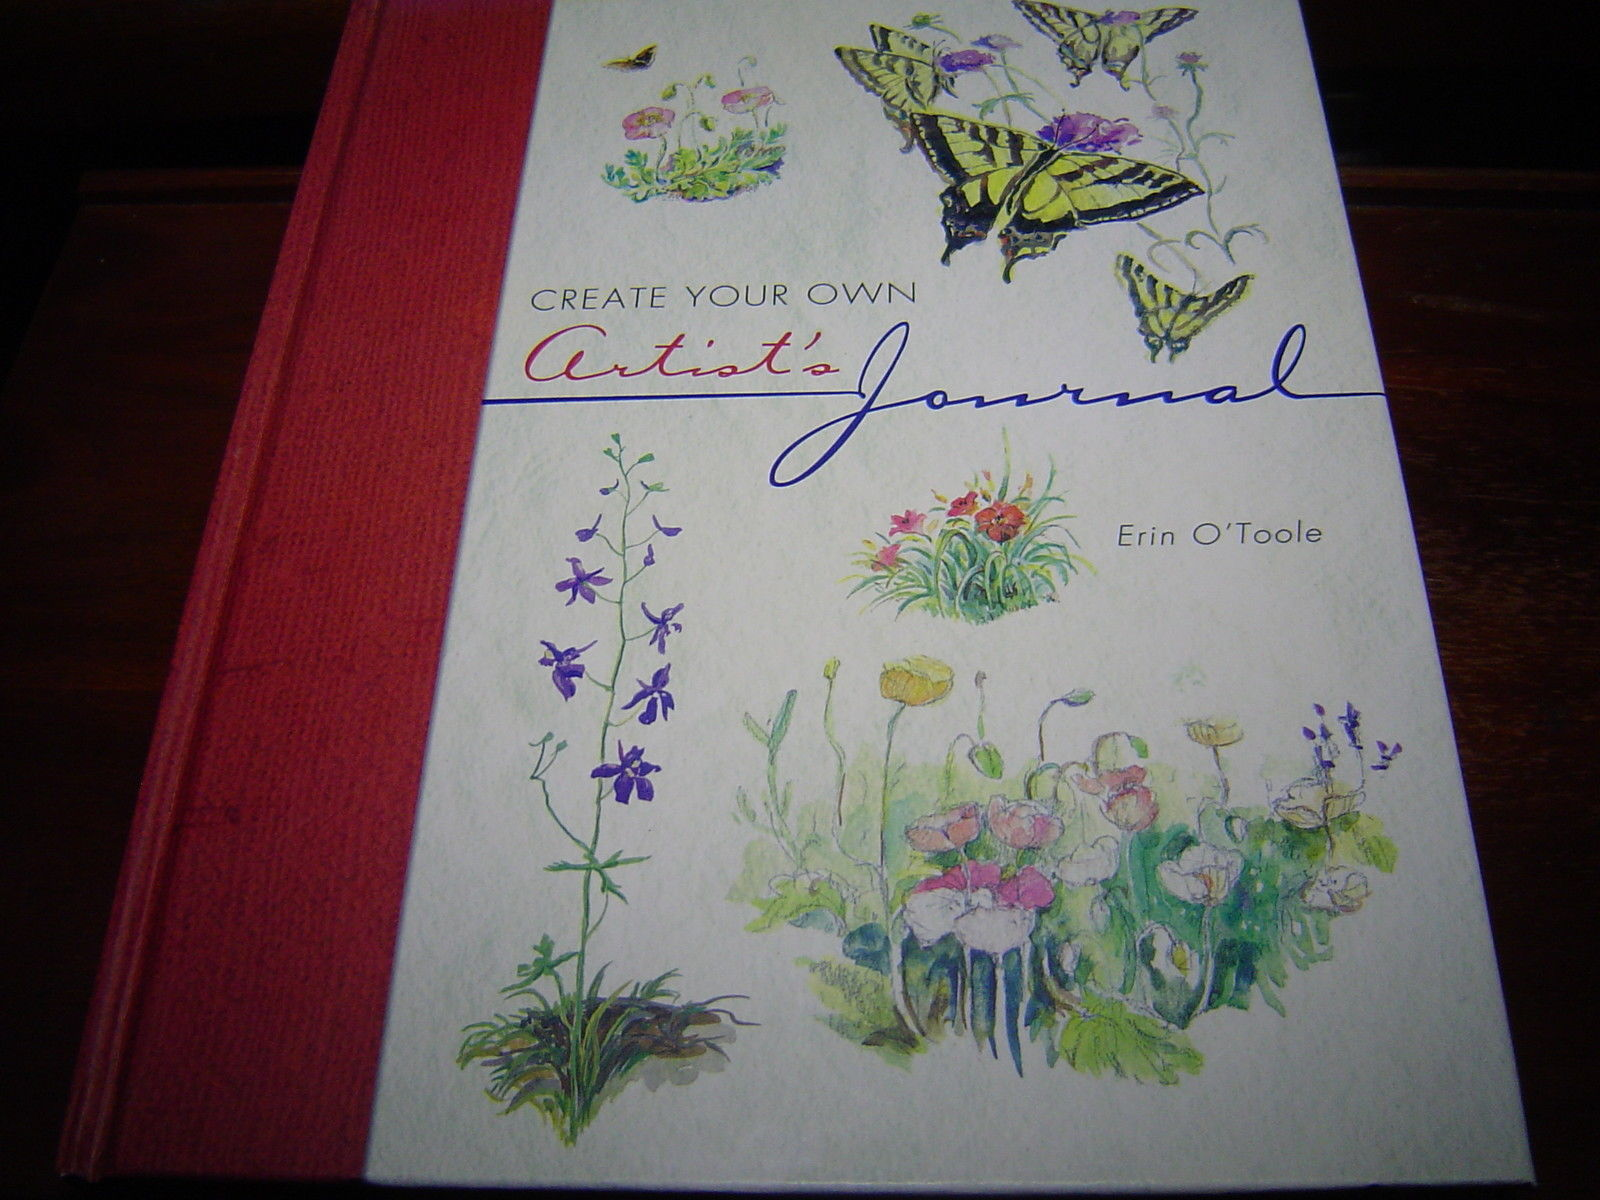 * NEW* Create Your Own Artist's Journal by Erin O'Toole (2002) HARDCOVER image 1